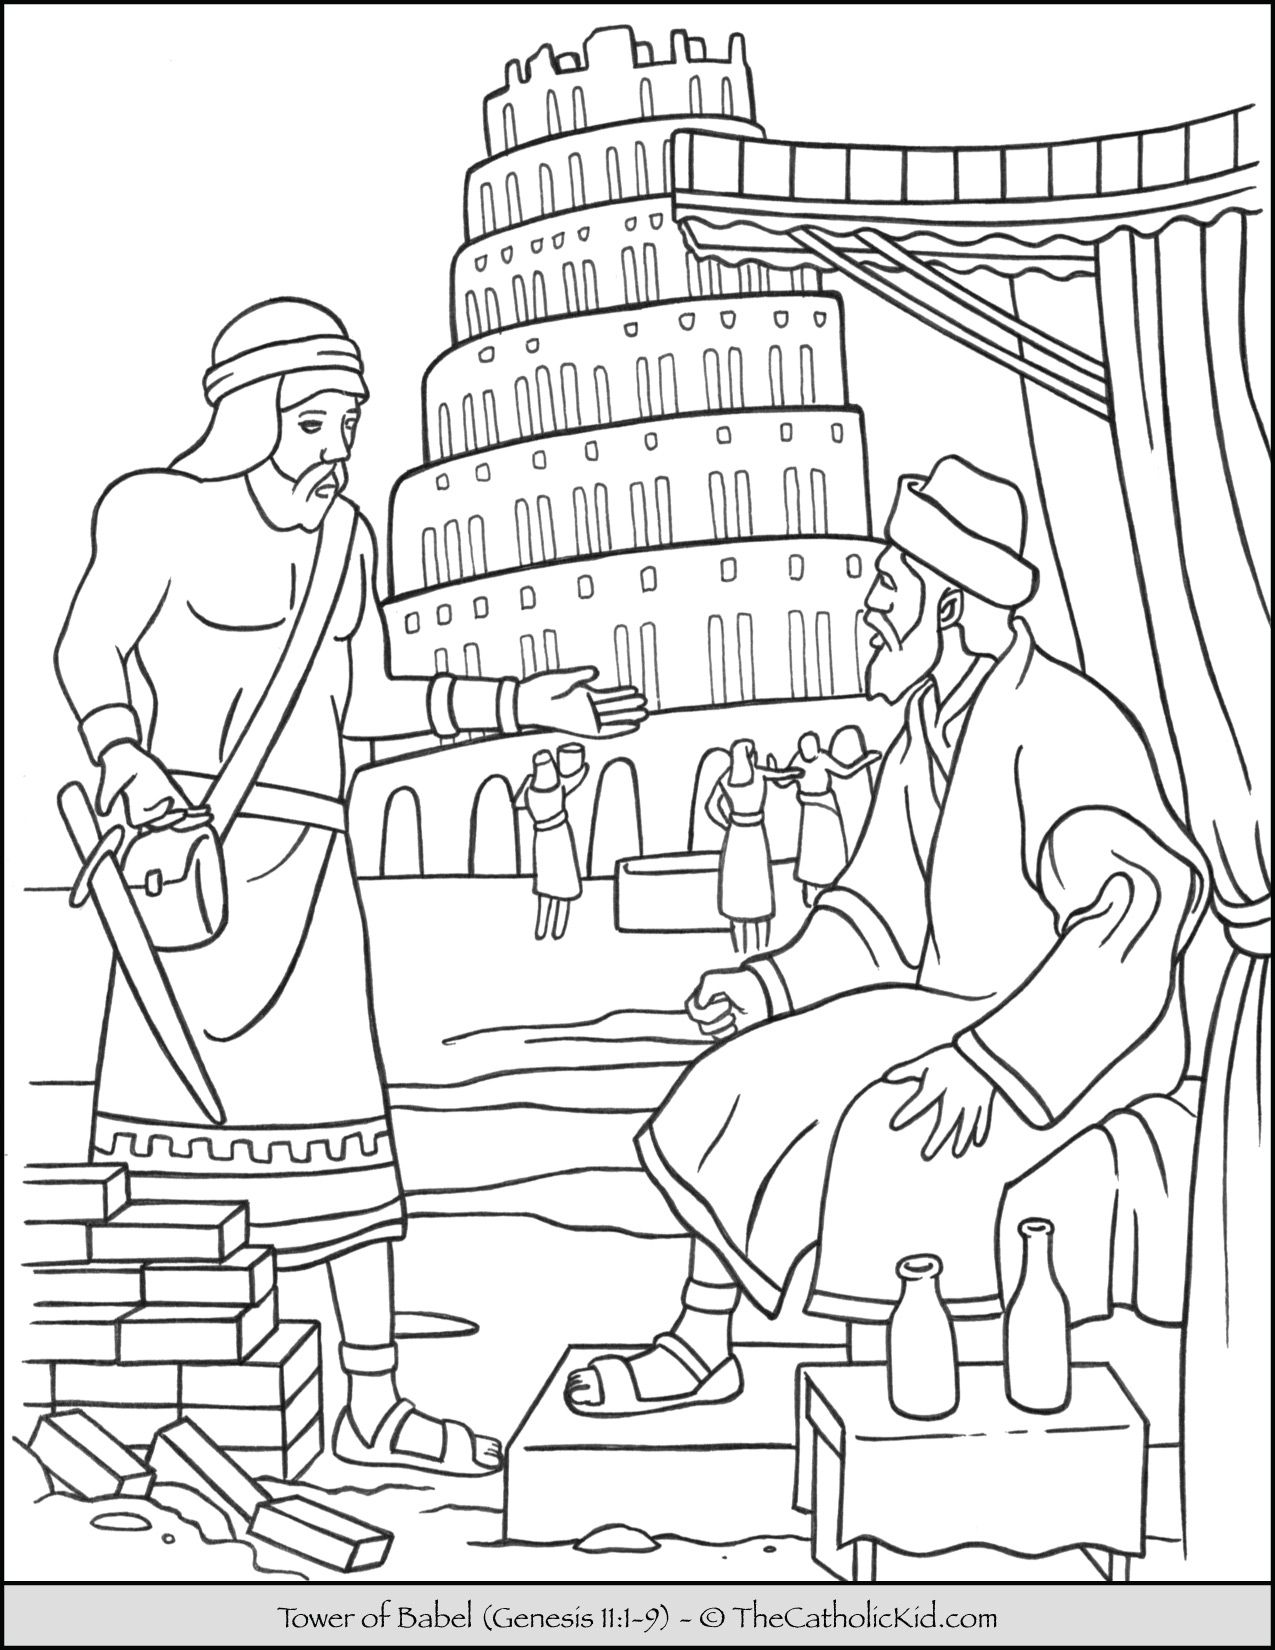 8 Top Image Tower Of Babel Coloring Page In 2021 Bible Coloring Pages Tower Of Babel Bible Coloring